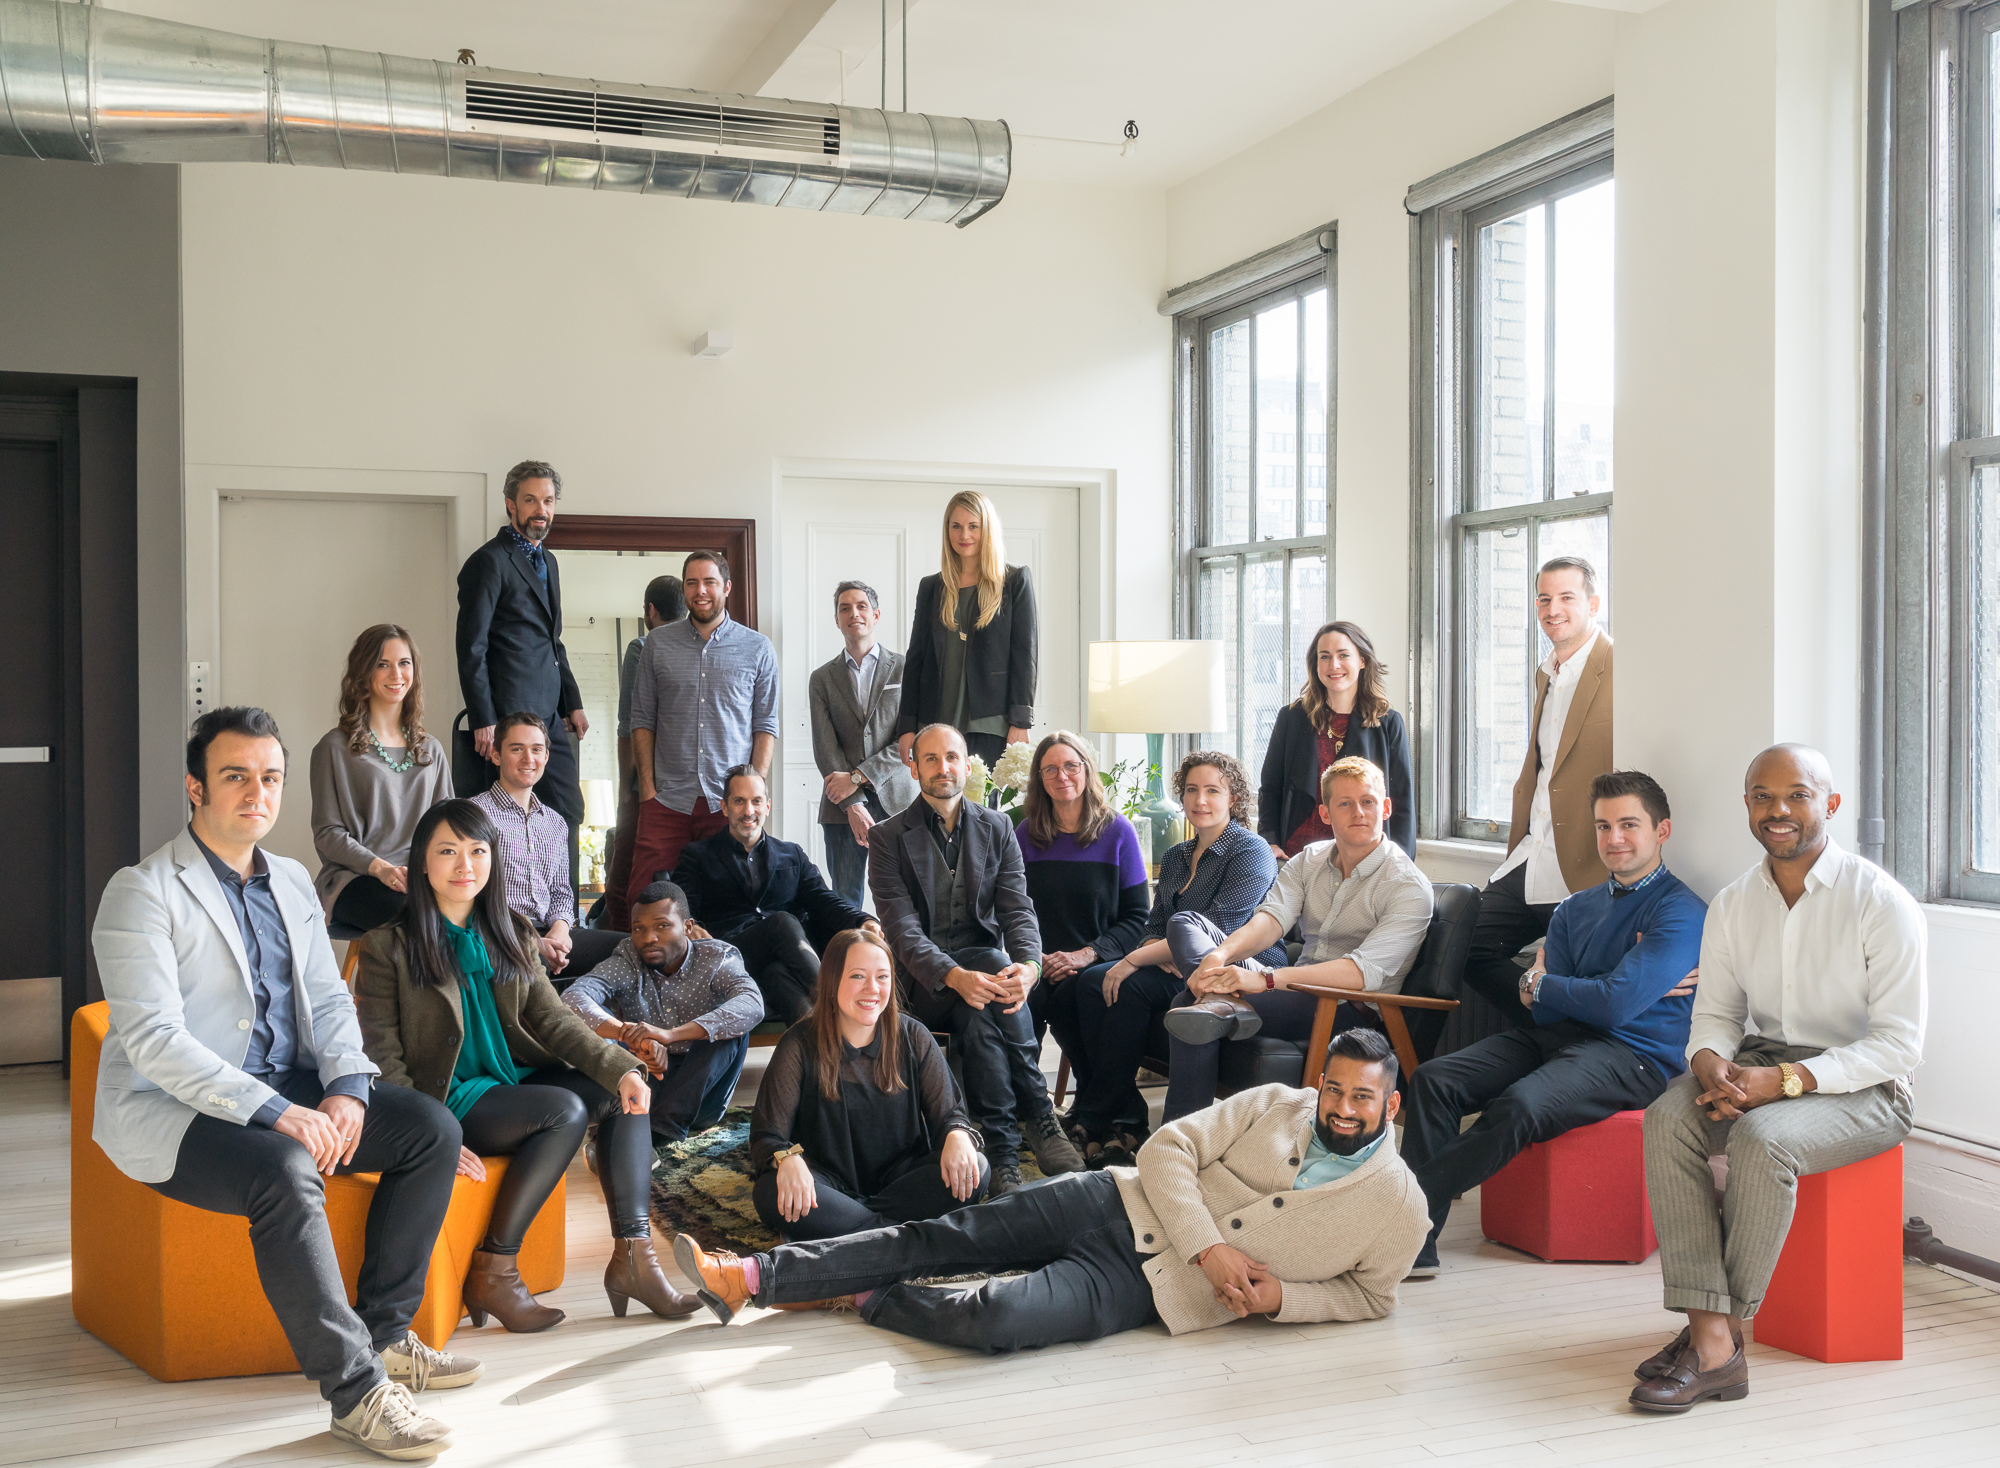 Staff Portrait for Incorporated Architecture & Design